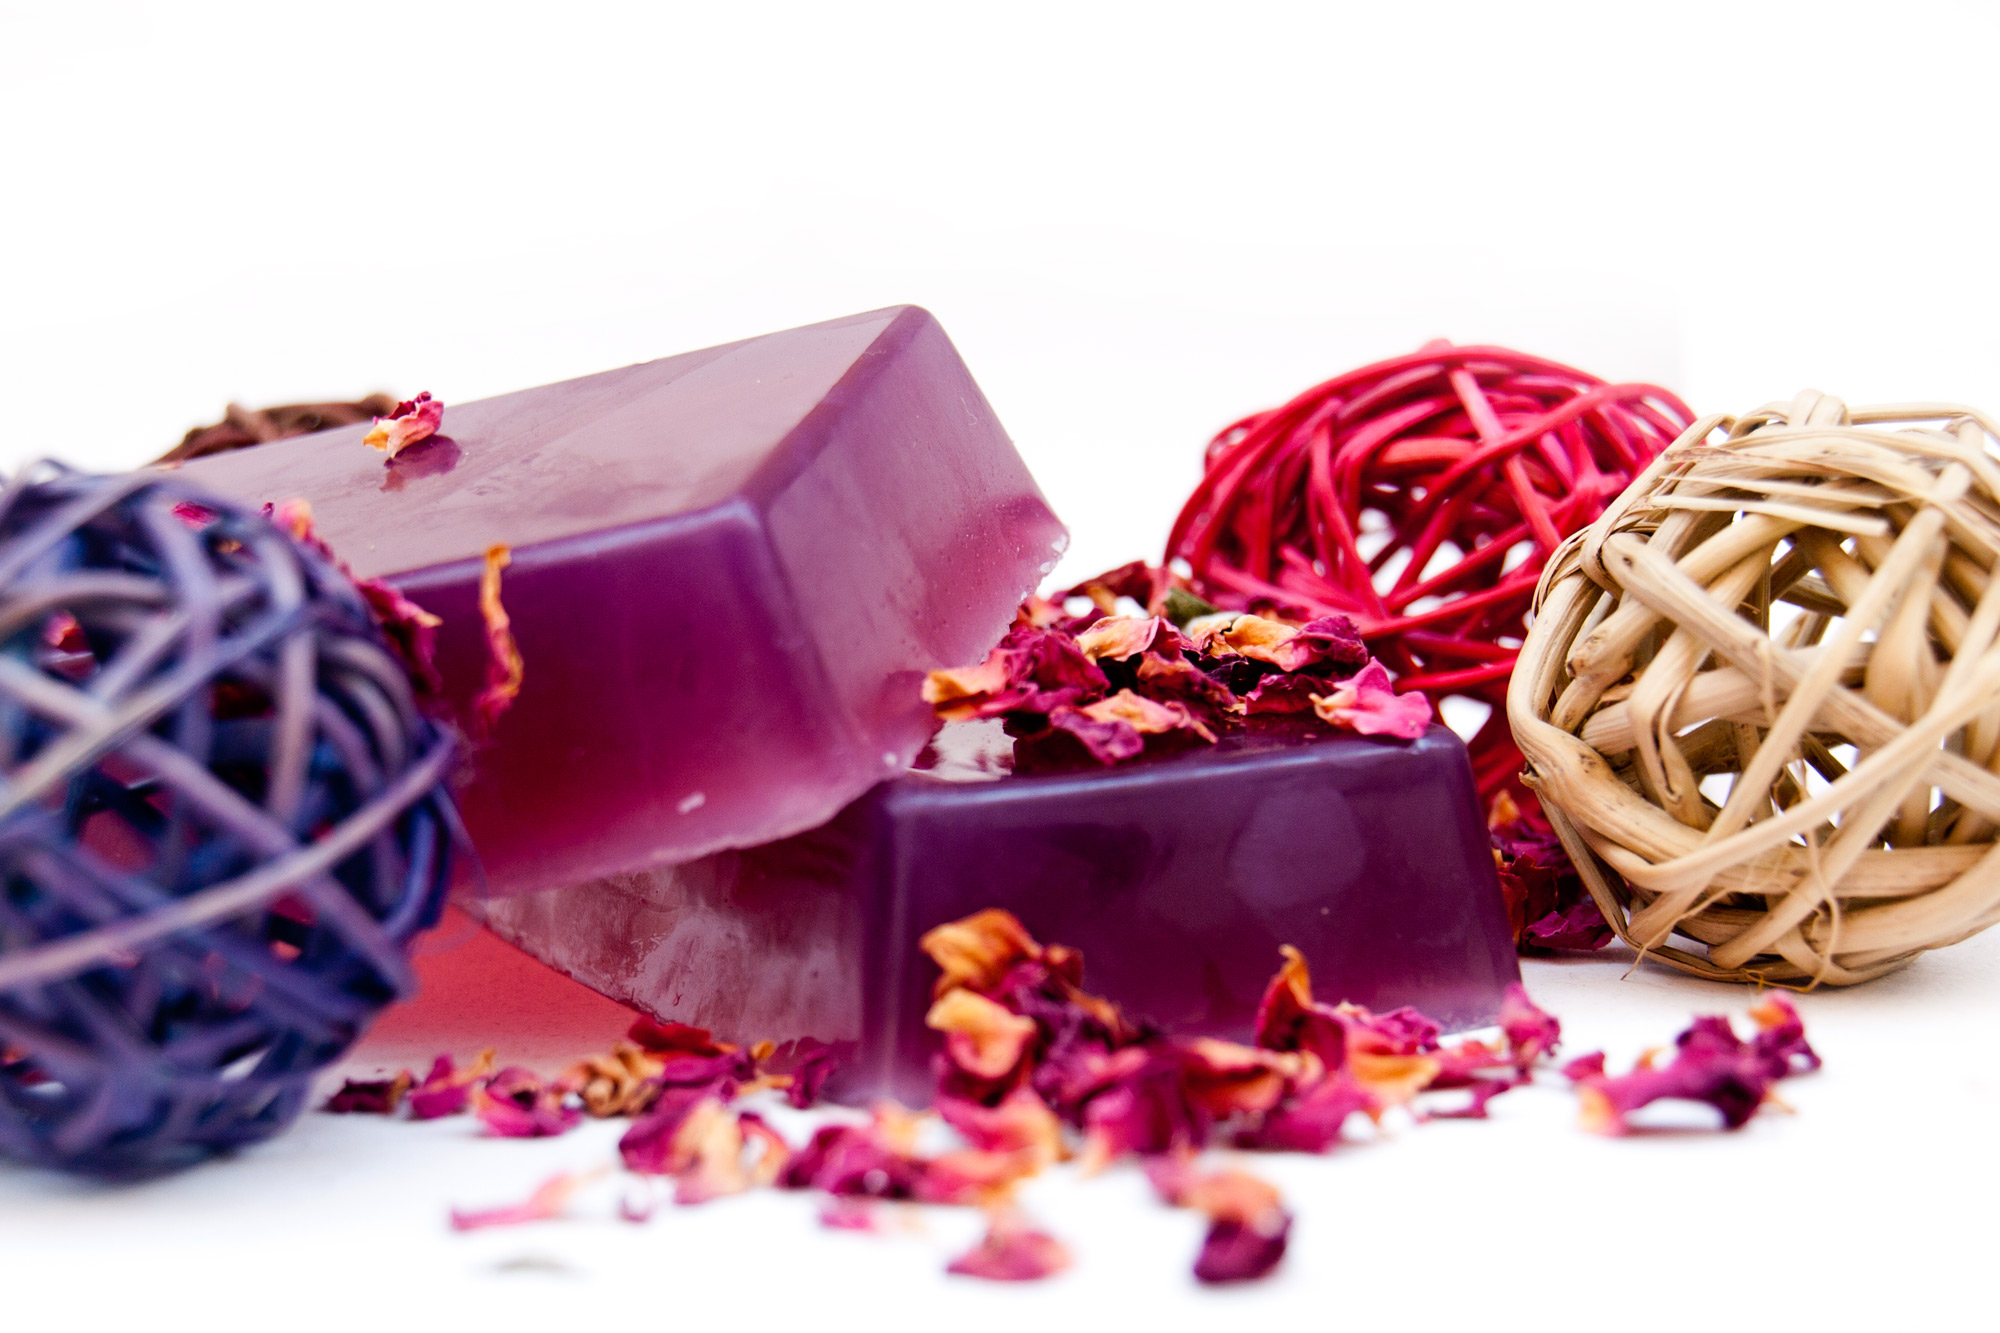 My first best selling product was this handmade soap inspired by India